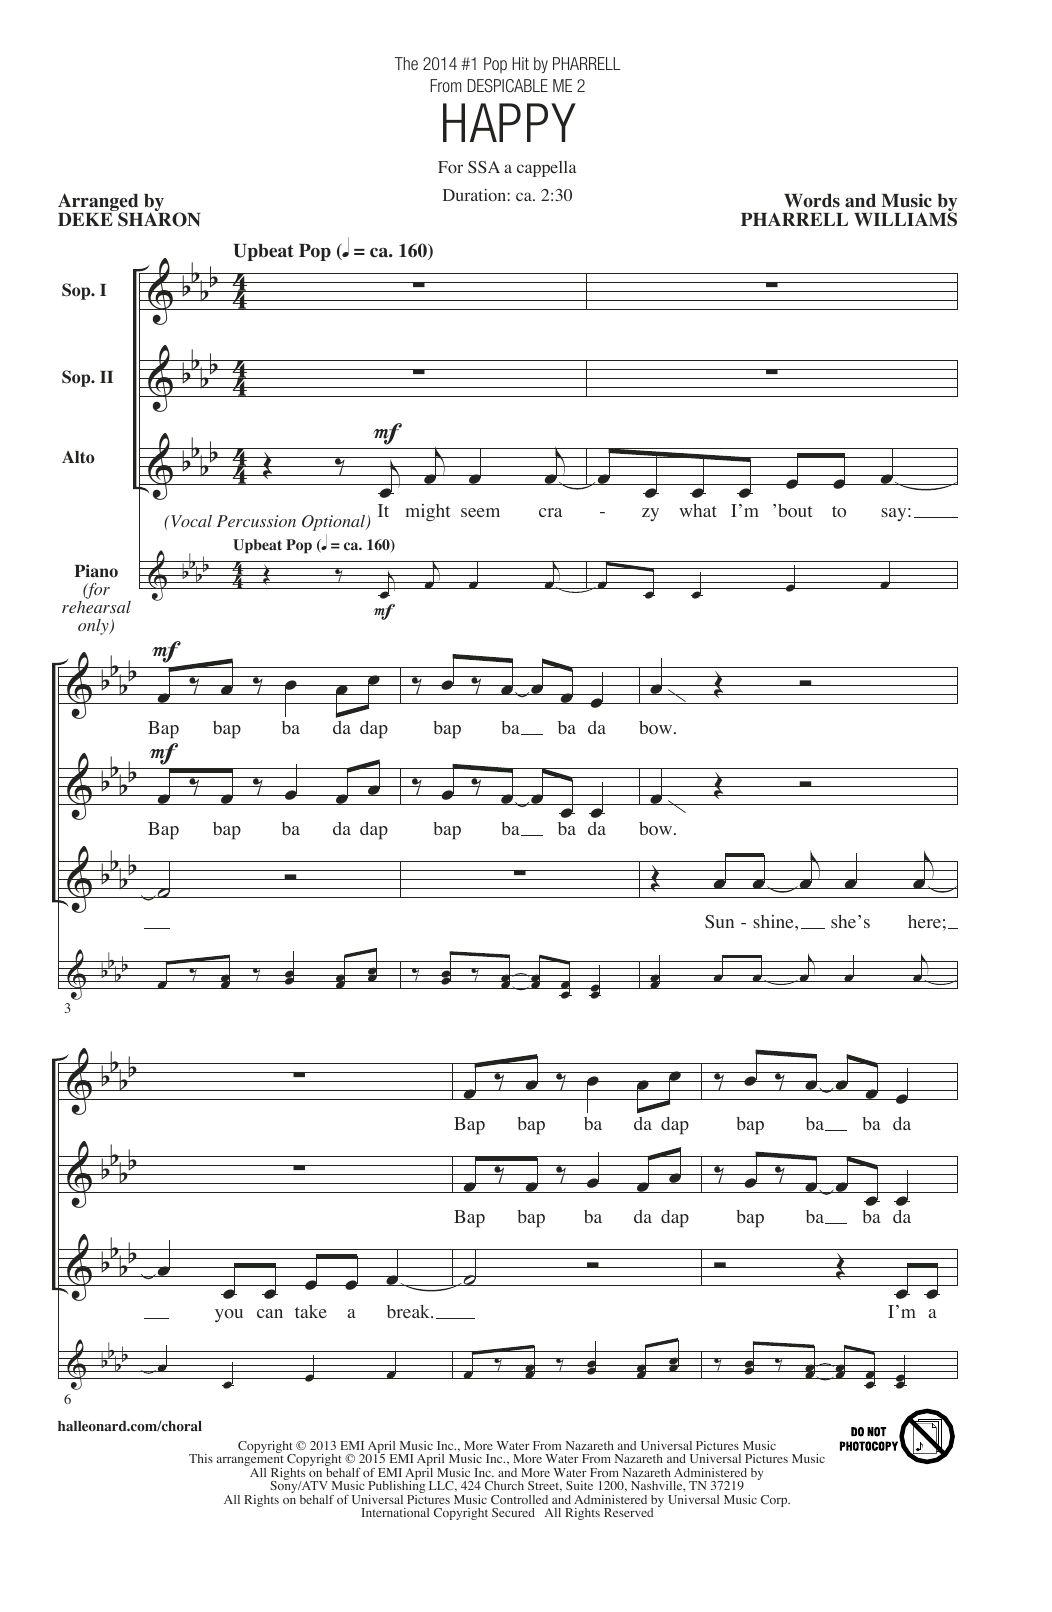 Pharrell Williams Happy (arr. Deke Sharon) sheet music notes and chords. Download Printable PDF.